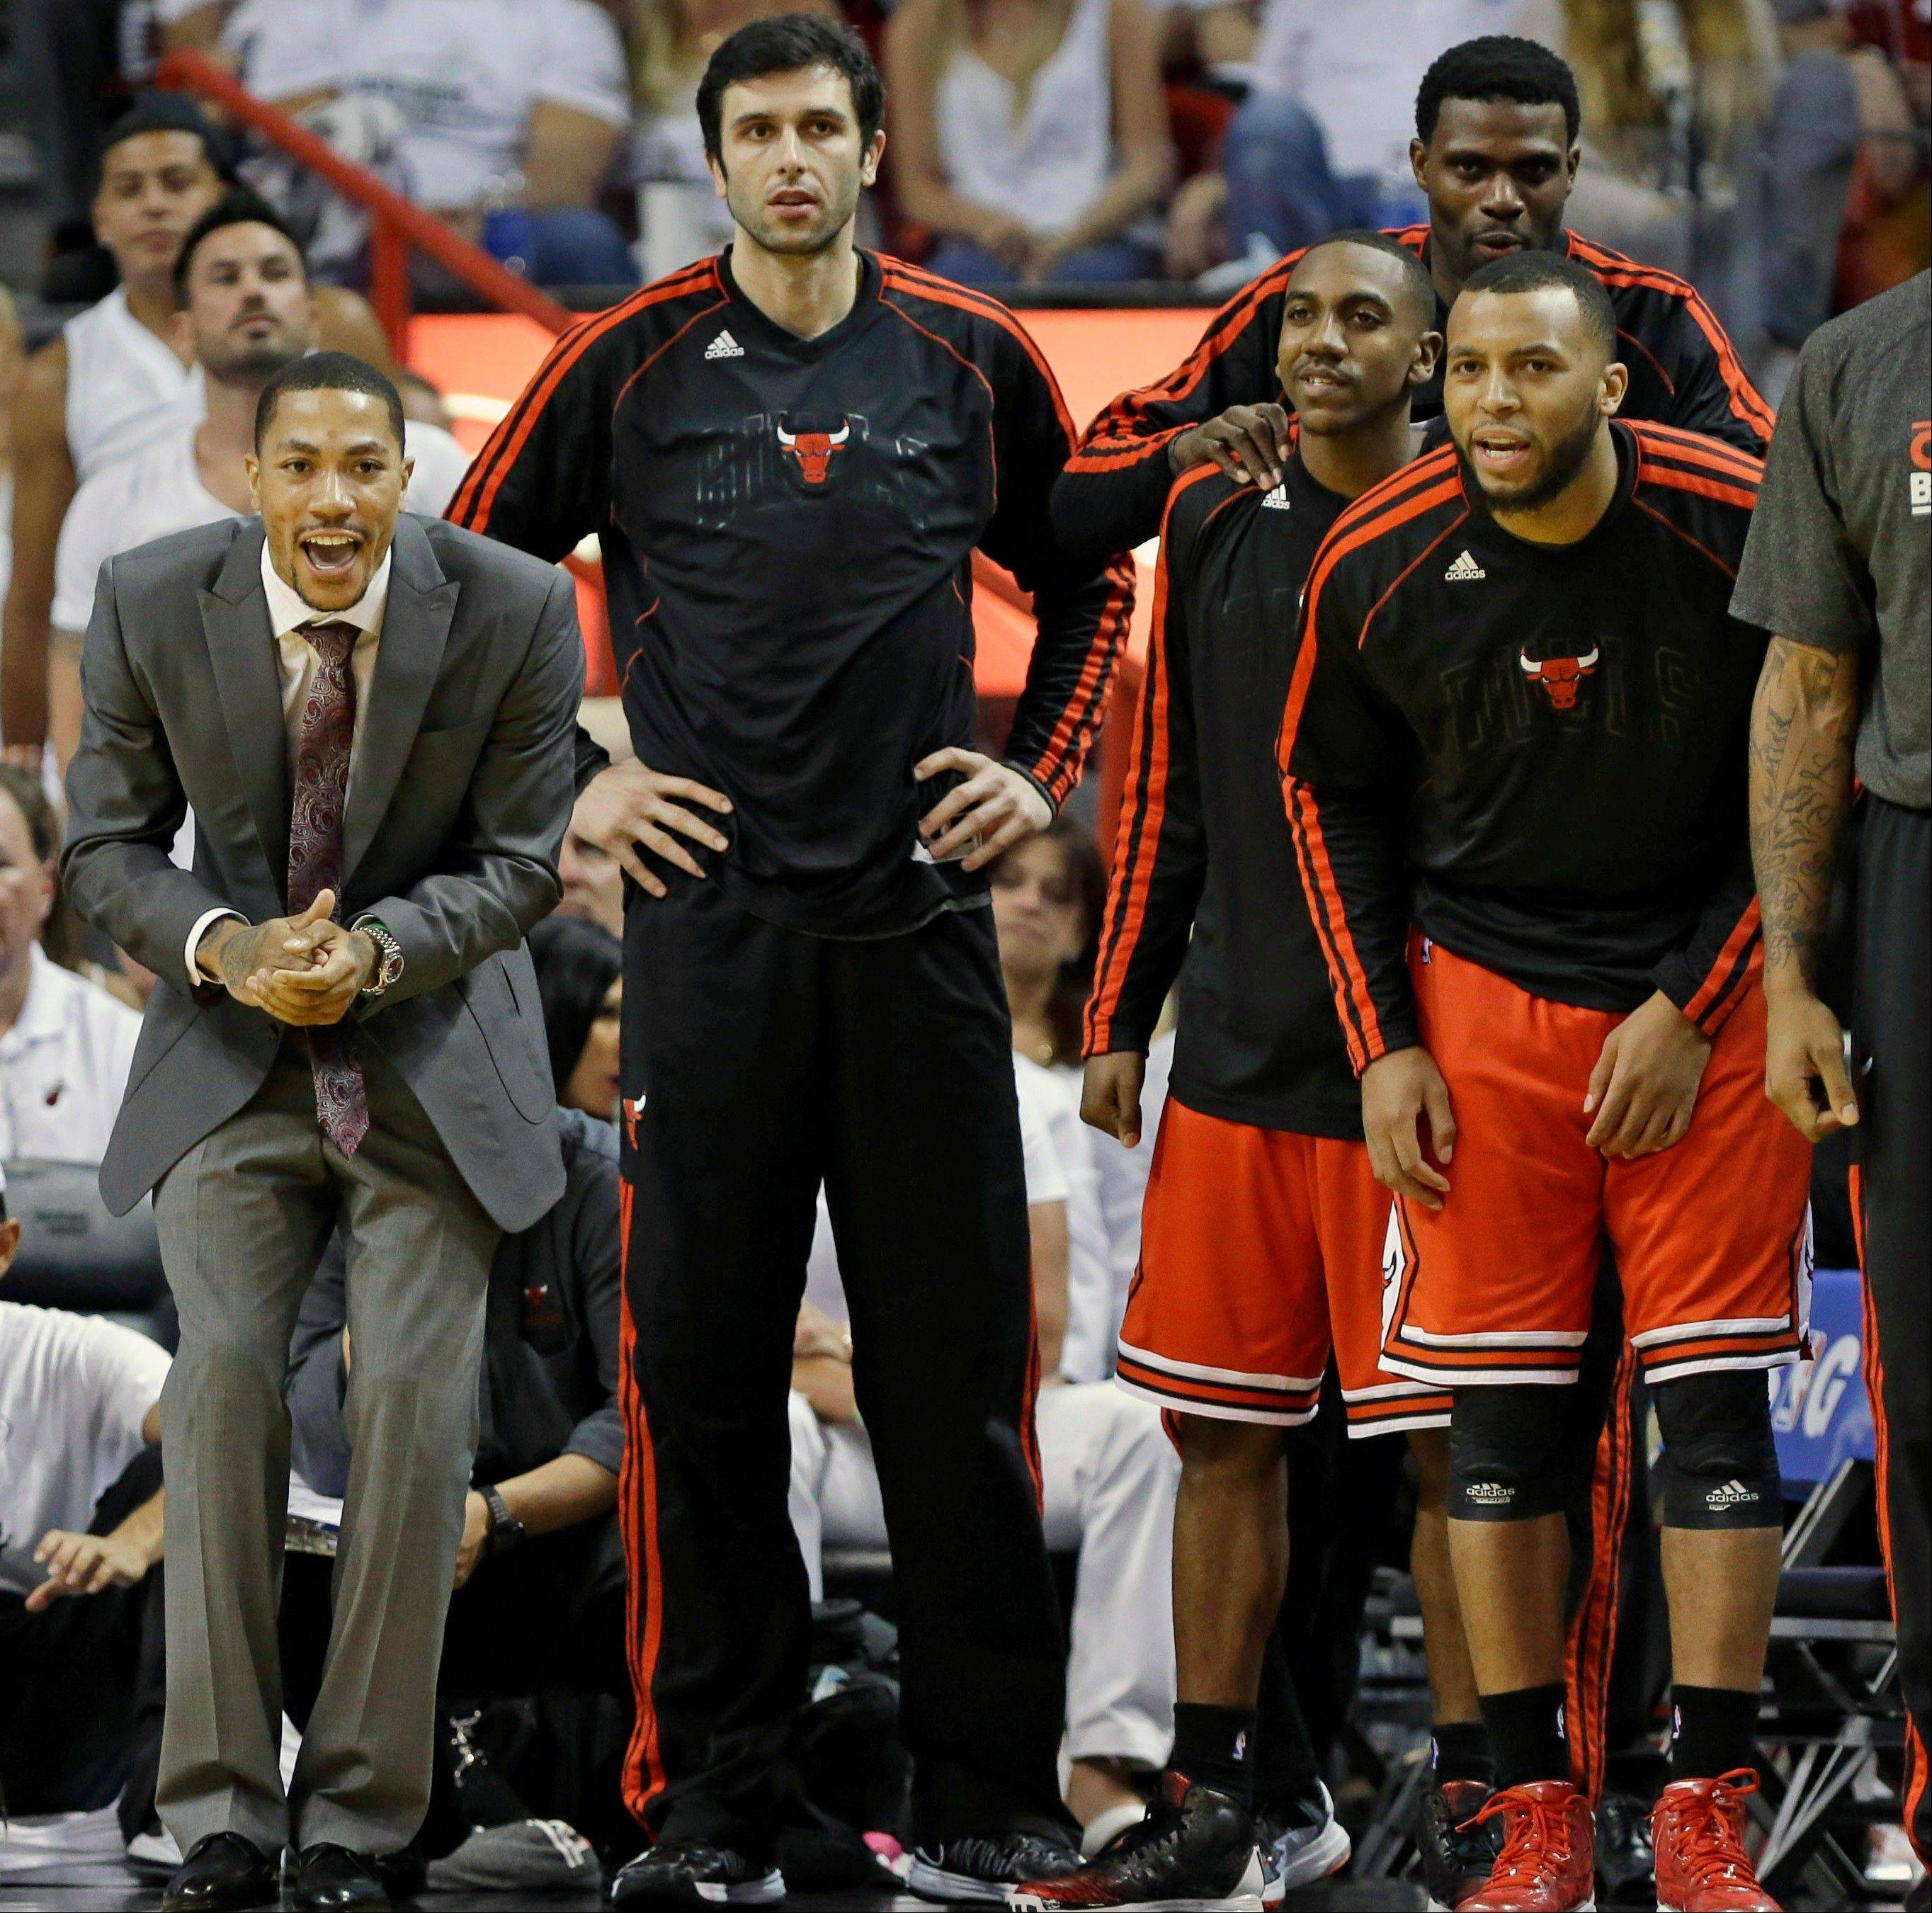 The Chicago Bulls bench, from left, Derrick Rose, Vladimir Radmanovic, Marquis Teague, Nazr Mohammed and Daequan Cook react during the second half in Game 1 of their NBA basketball playoff series in the Eastern Conference semifinals against the Miami Heat, Monday, May 6, 2013, in Miami. The Bulls defeated the Heat 93-86.